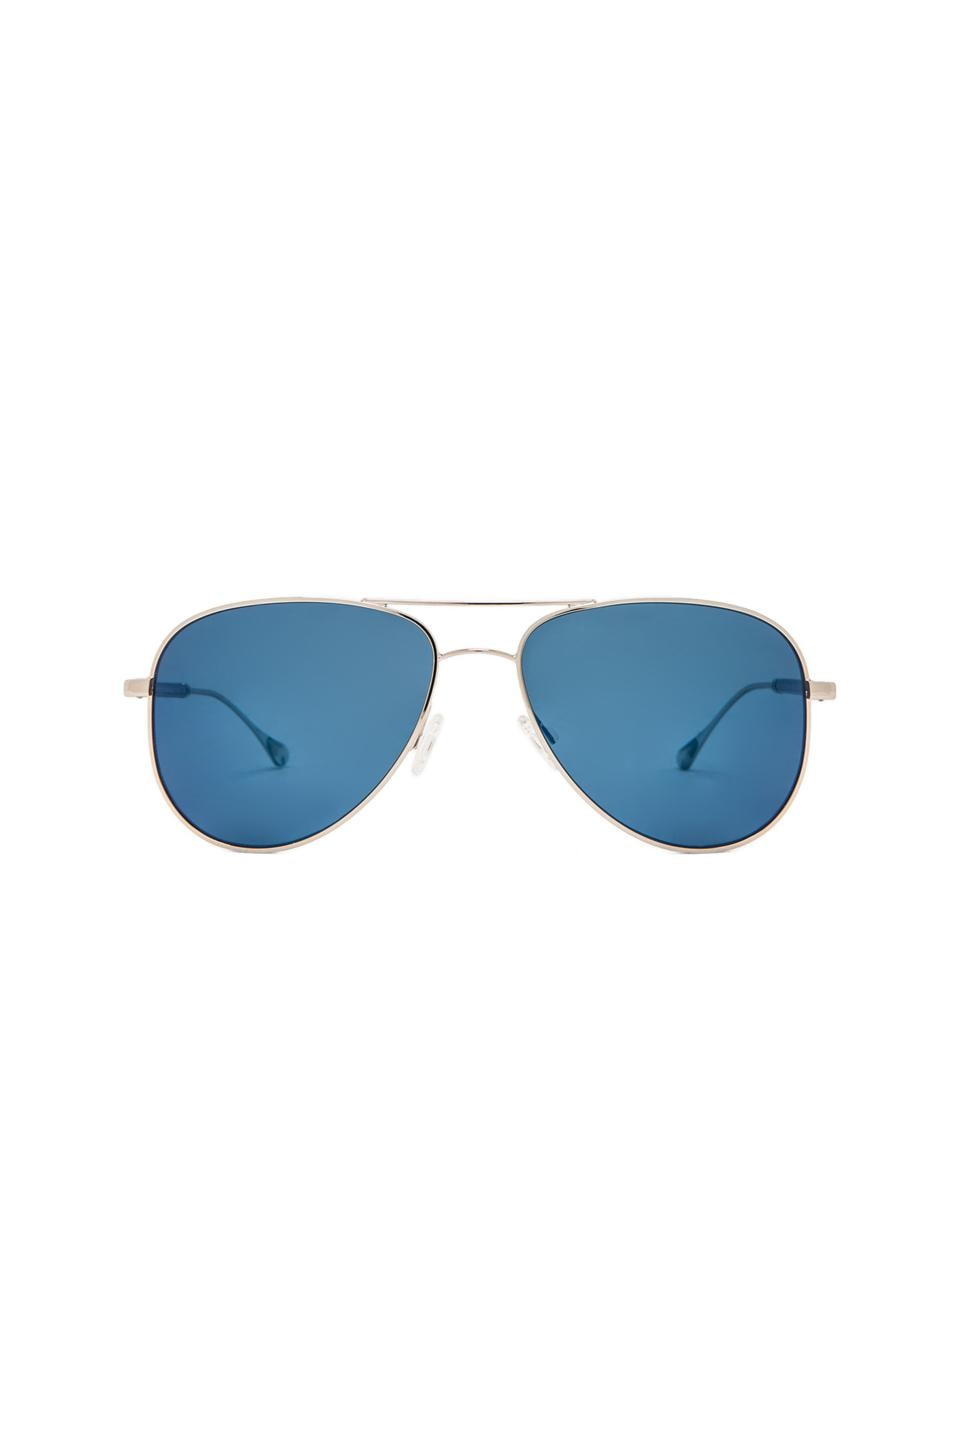 Oliver Peoples WEST Piedra Polarized Sunglasses in Silver & Malibu Mirror